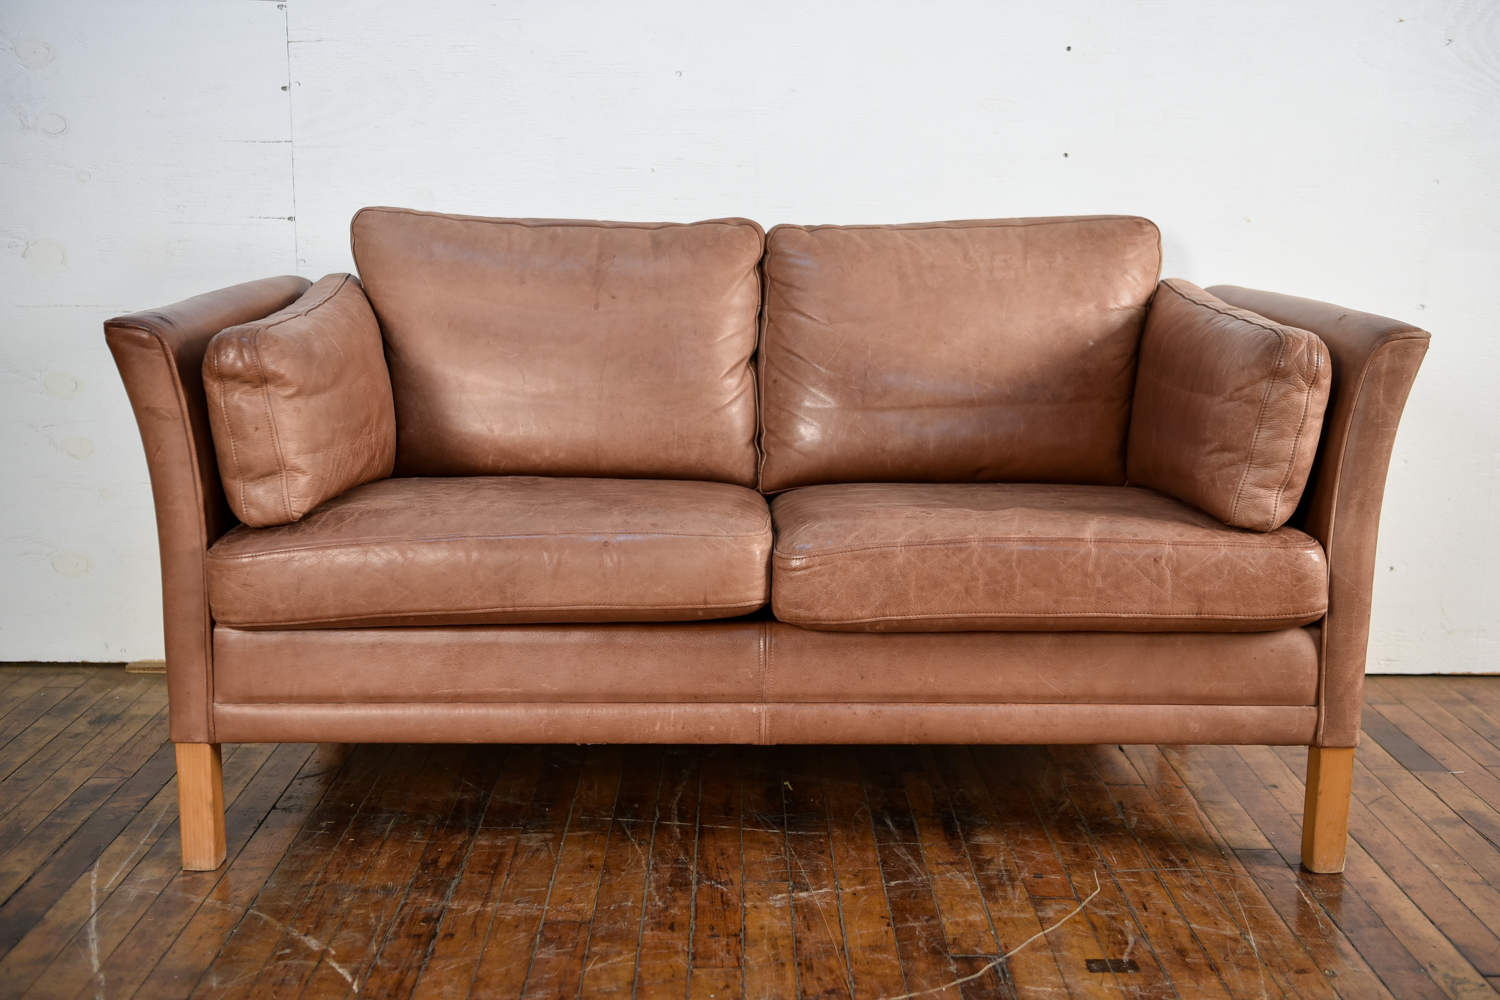 Amazing Danish Leather Sofa By Mogens Hansen 1960S Evergreenethics Interior Chair Design Evergreenethicsorg